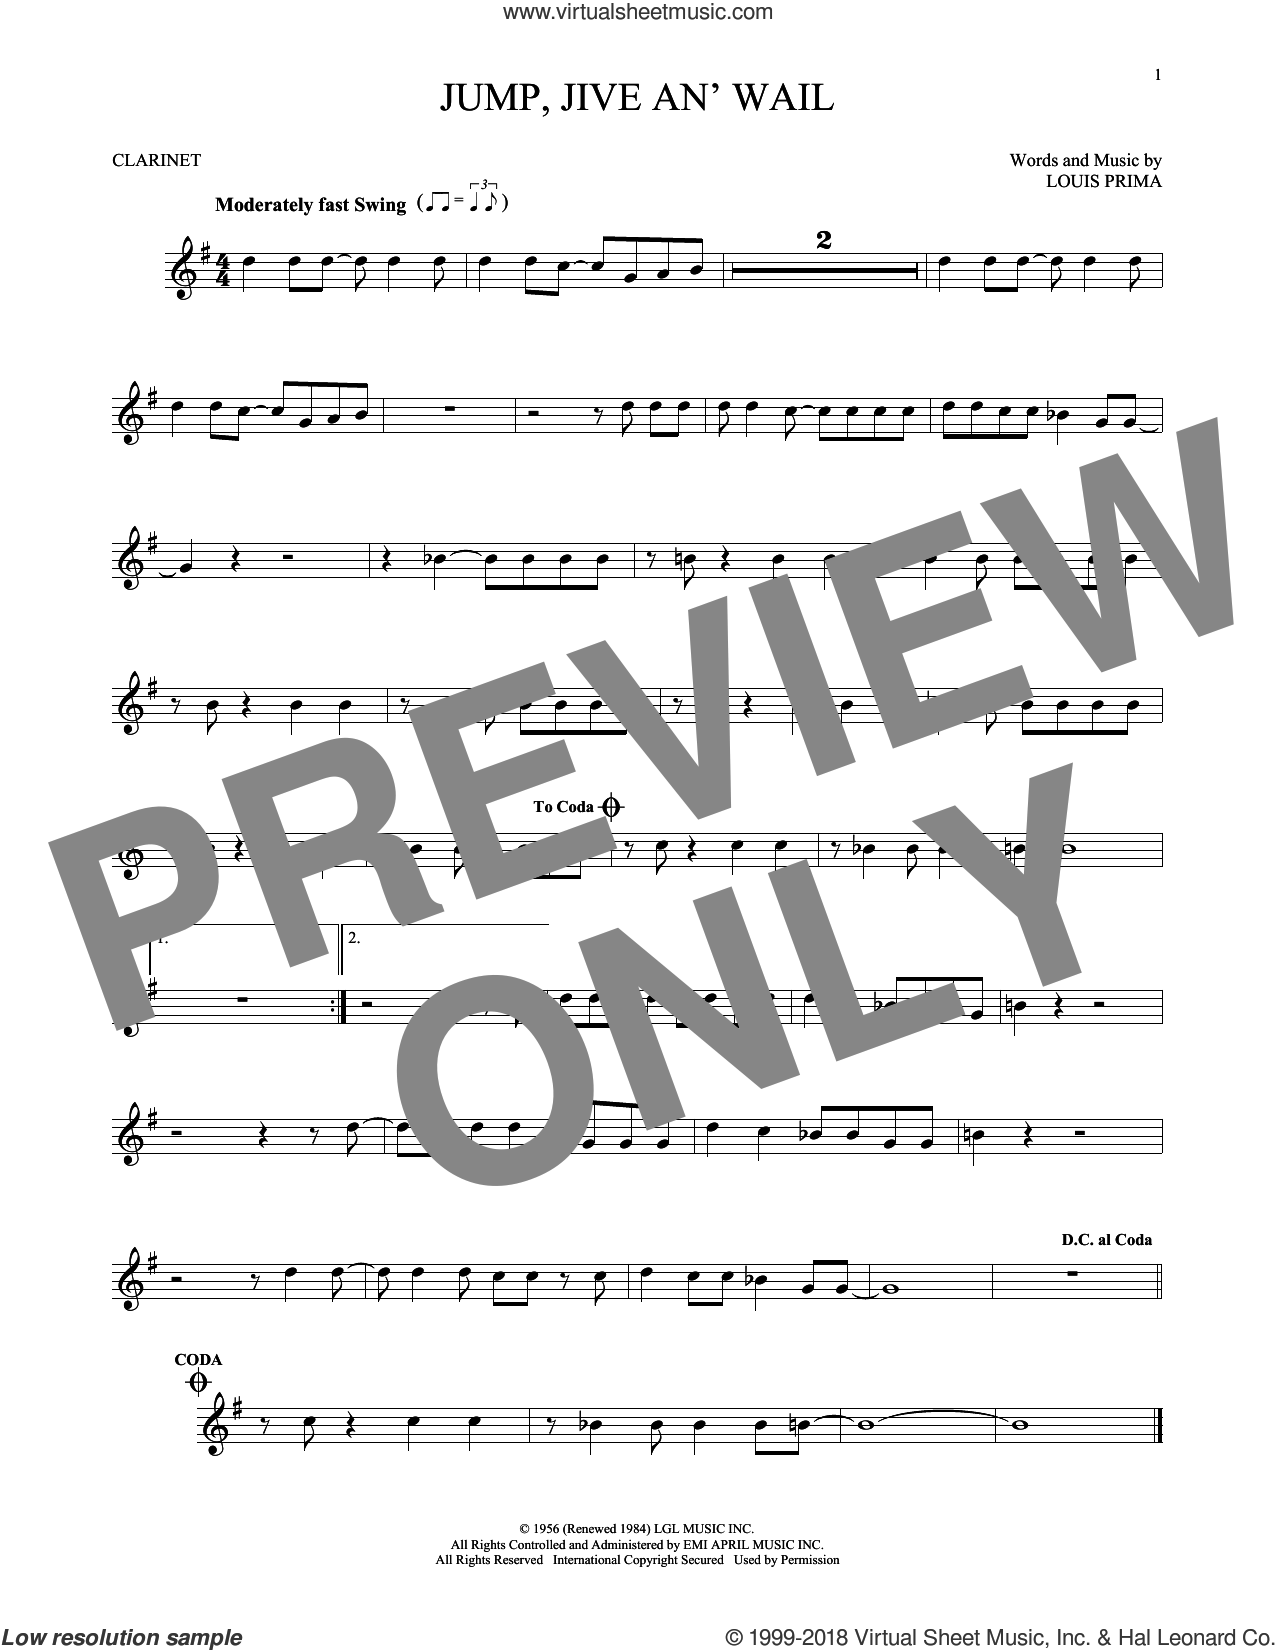 Jump, Jive An' Wail sheet music for clarinet solo by Louis Prima and Brian Setzer. Score Image Preview.